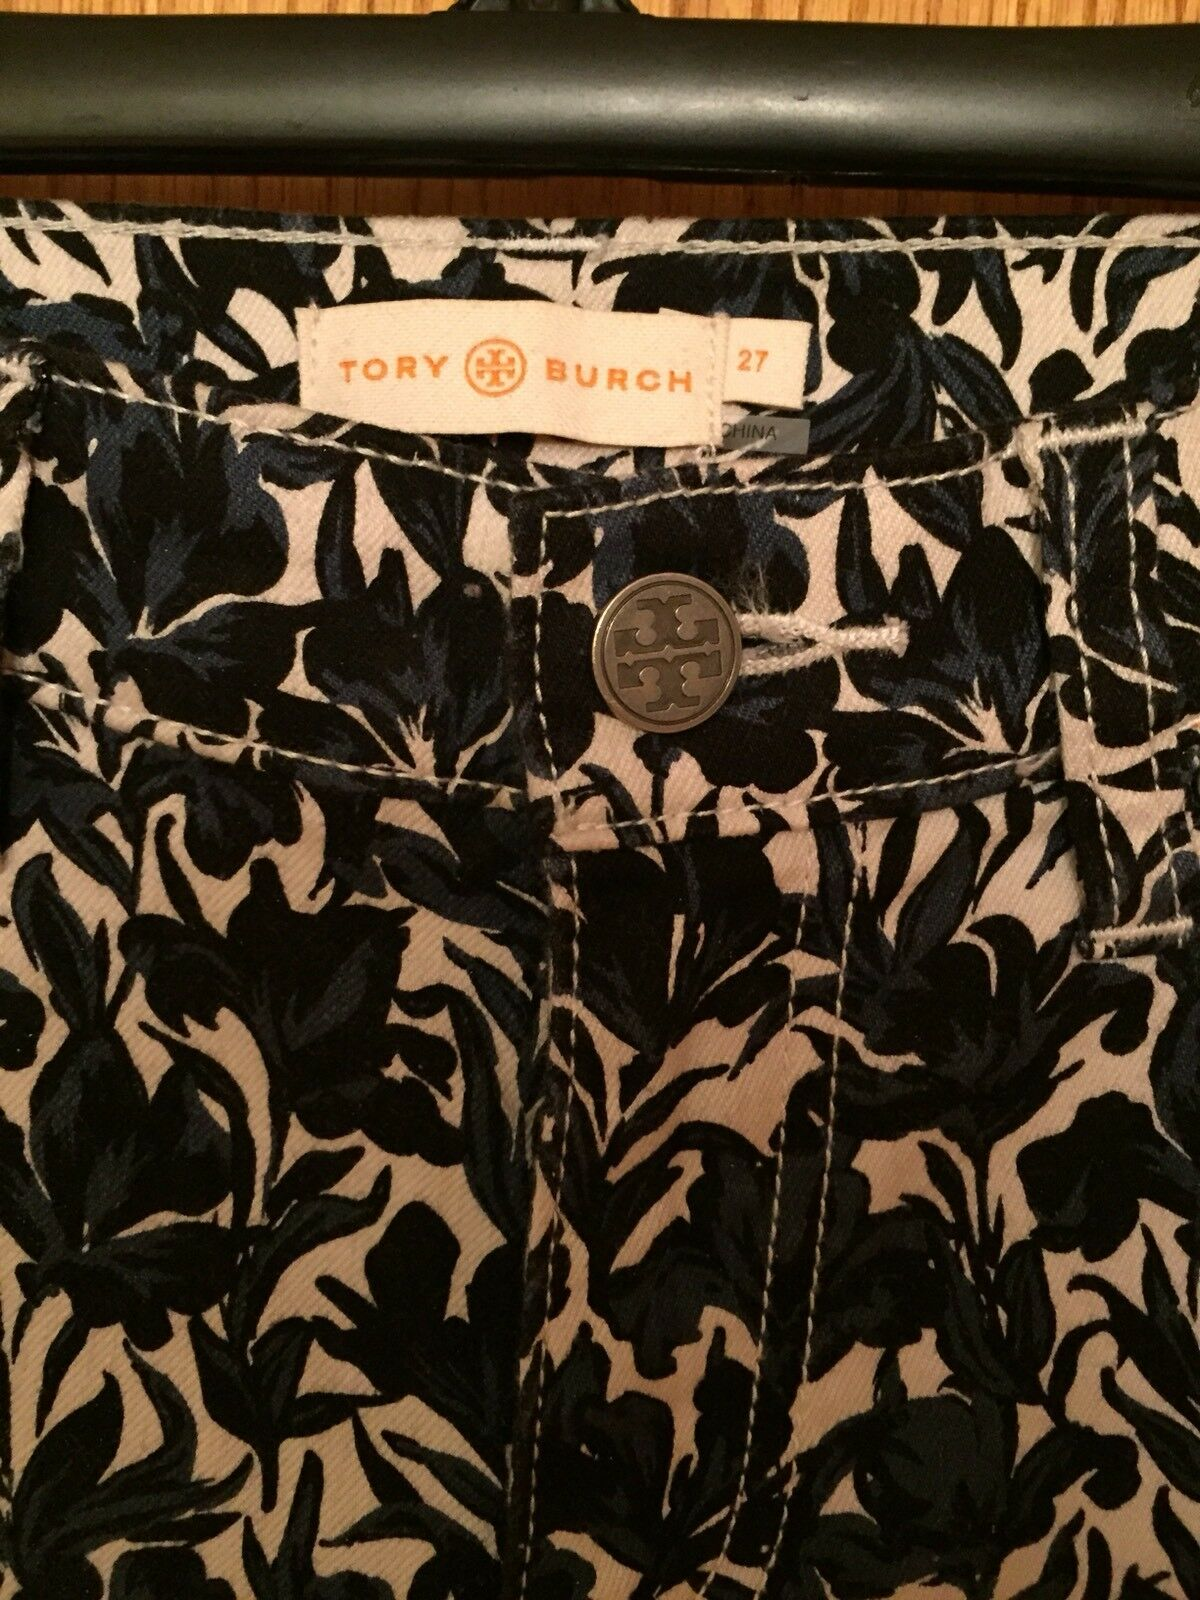 WOMEN'S TORY BURCH CROPPED FLORAL PANTS SZ 27 Euc